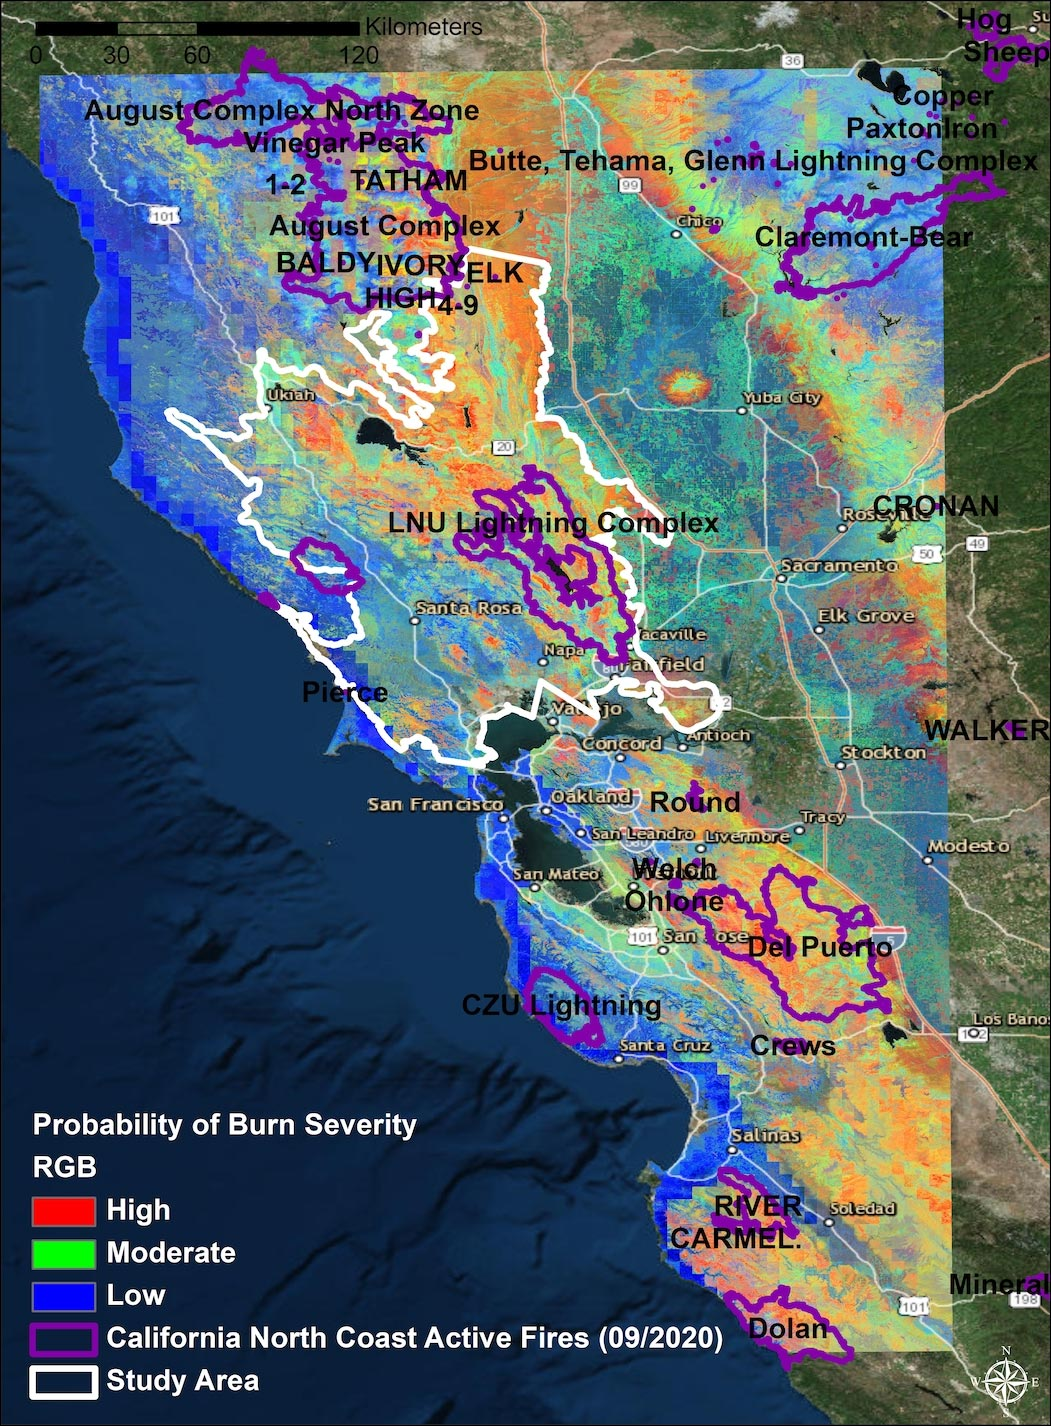 High-Severity Wildfires on the Rise in Northern California's Coastal Ranges Since 1984 - SciTechDaily